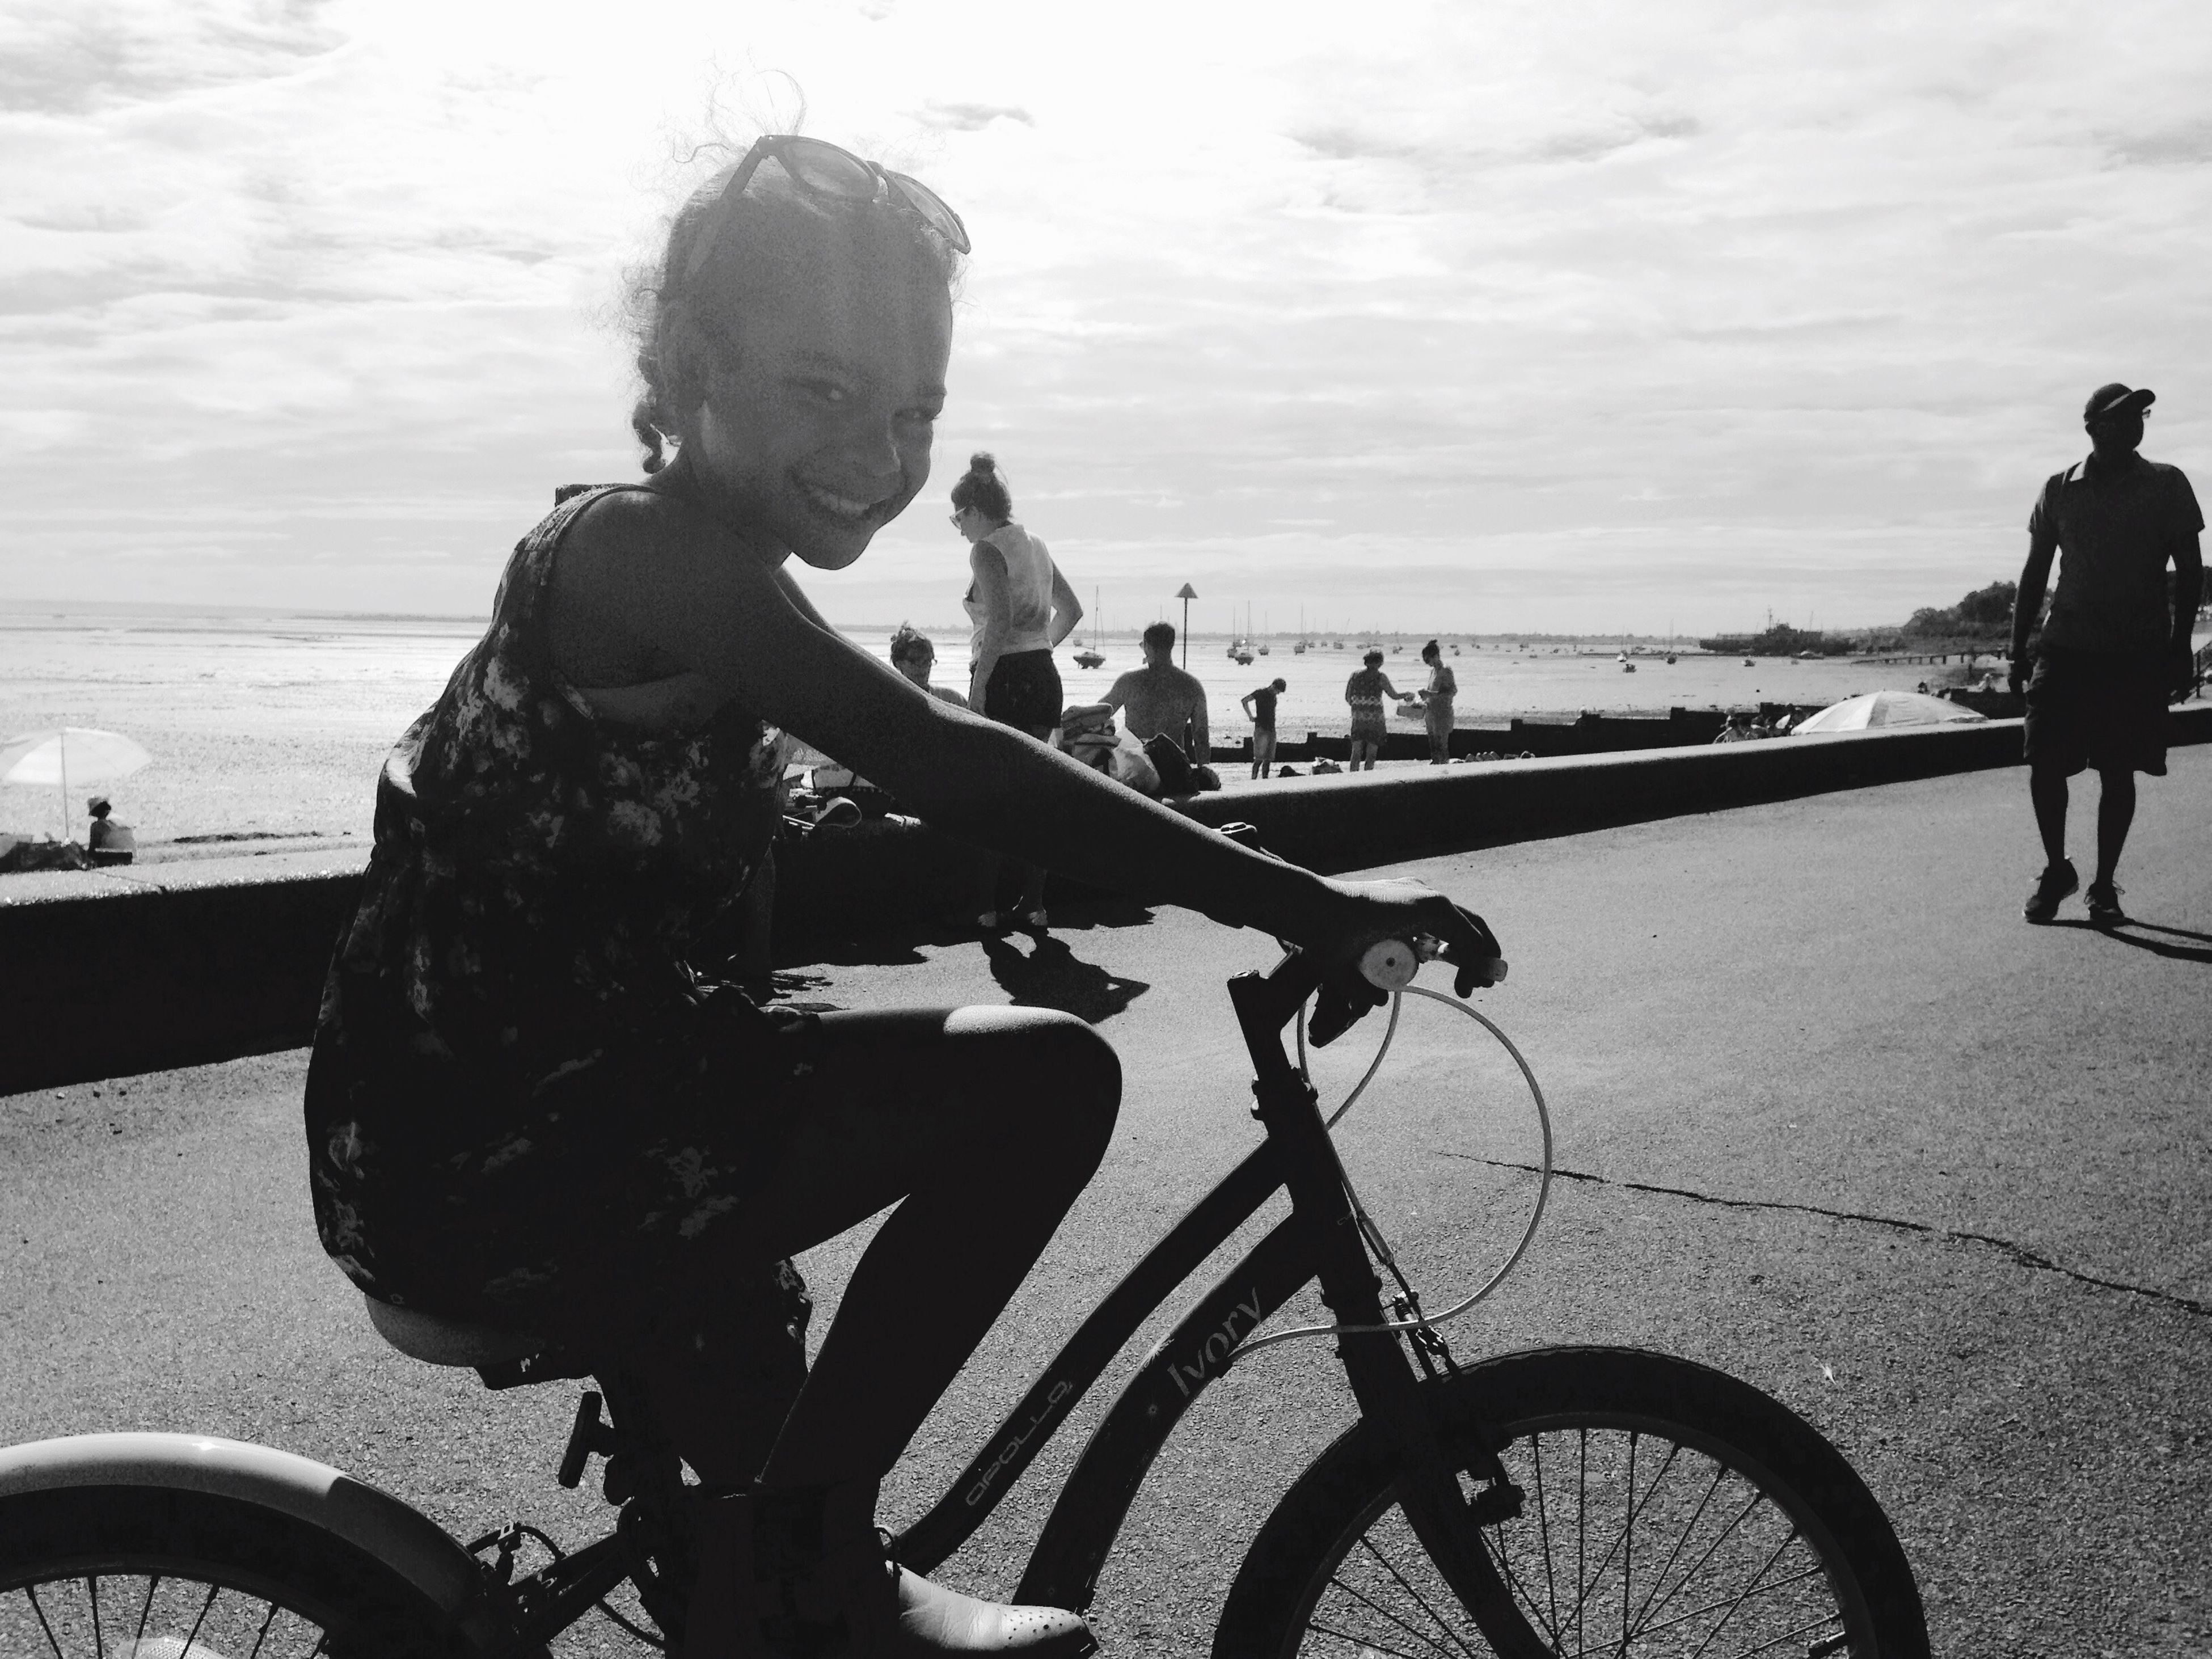 bicycle, sea, lifestyles, leisure activity, sky, men, beach, transportation, water, mode of transport, land vehicle, shore, full length, cloud - sky, person, railing, horizon over water, travel